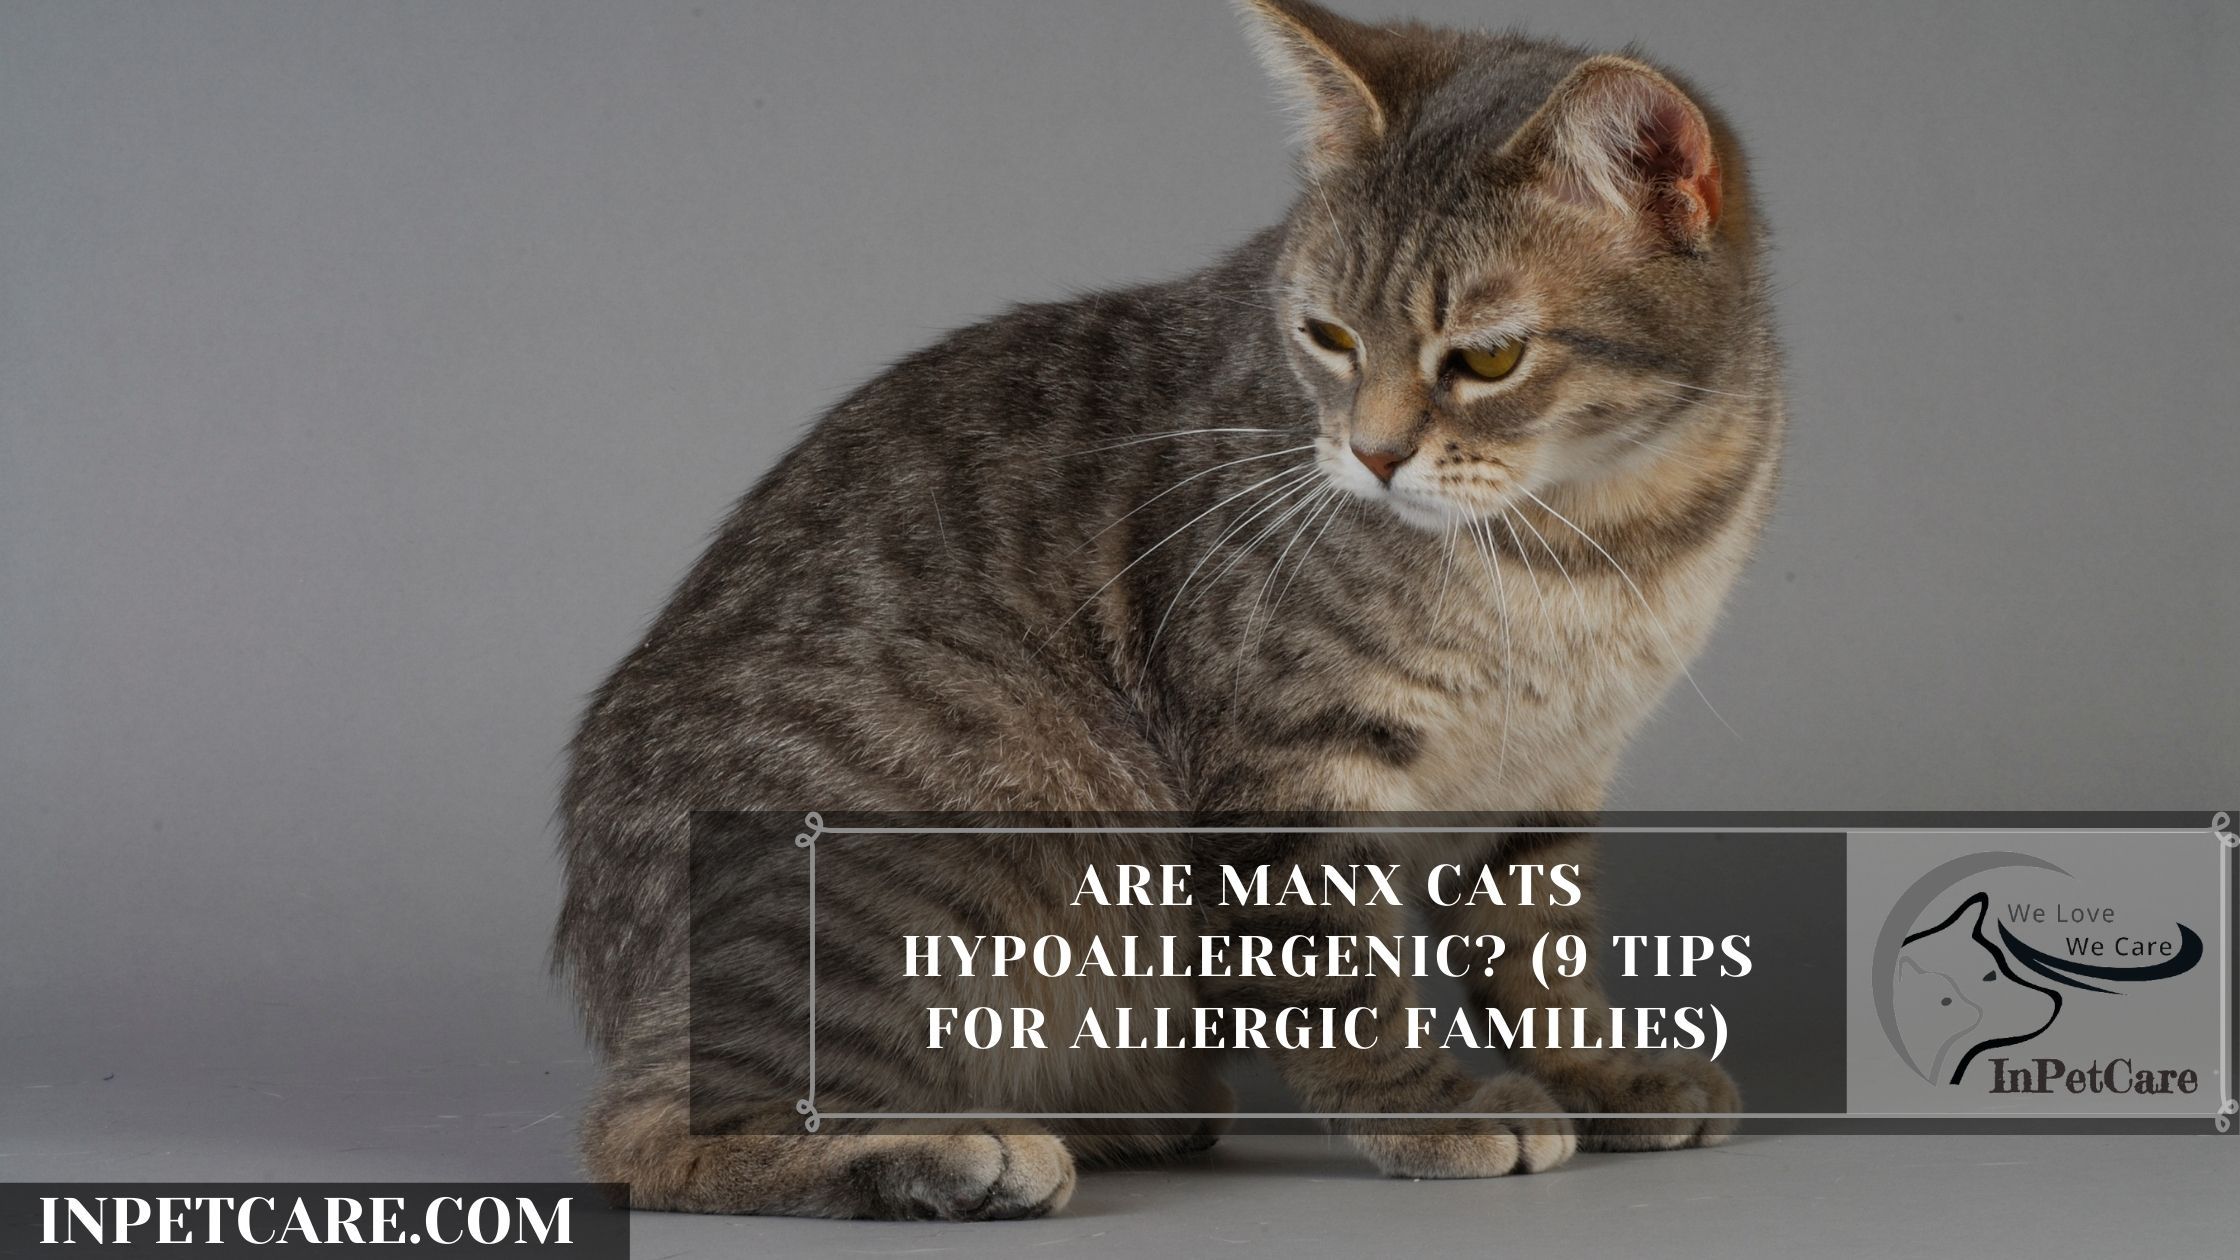 Are Manx Cats Hypoallergenic? (9 Tips For Allergic Families)